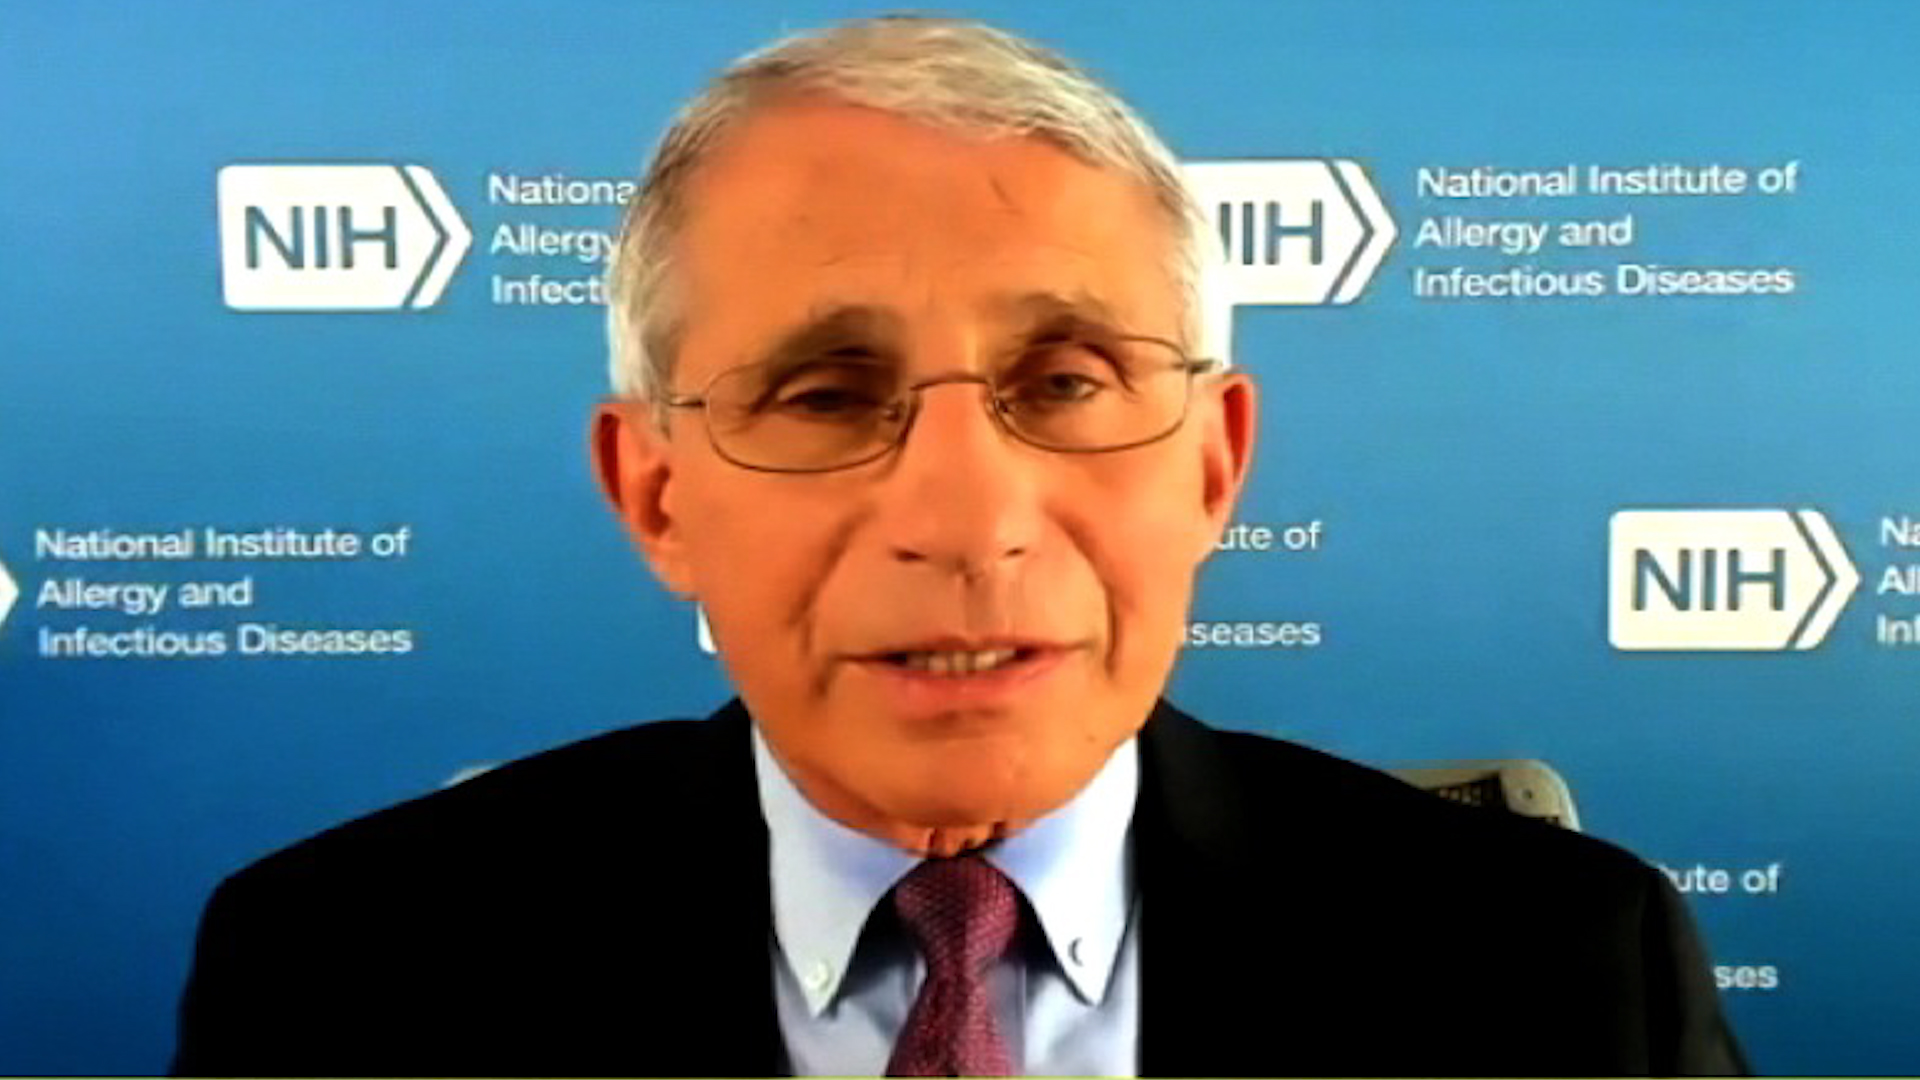 Fauci says US has suffered from pandemic 'as much or worse than anyone'